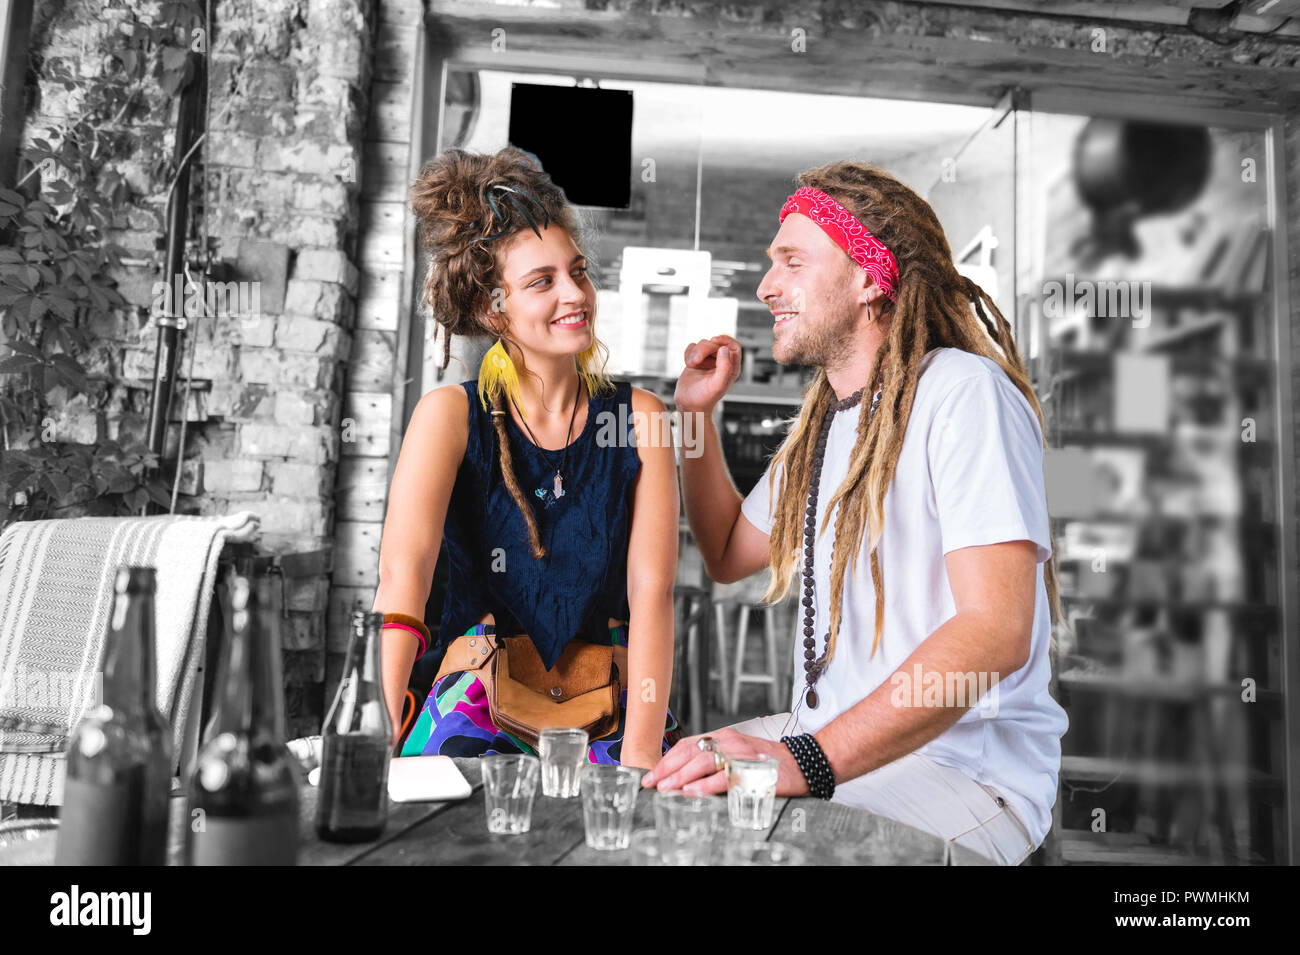 Bearded man with dreadlocks falling in love with his beautiful girlfriend - Stock Image